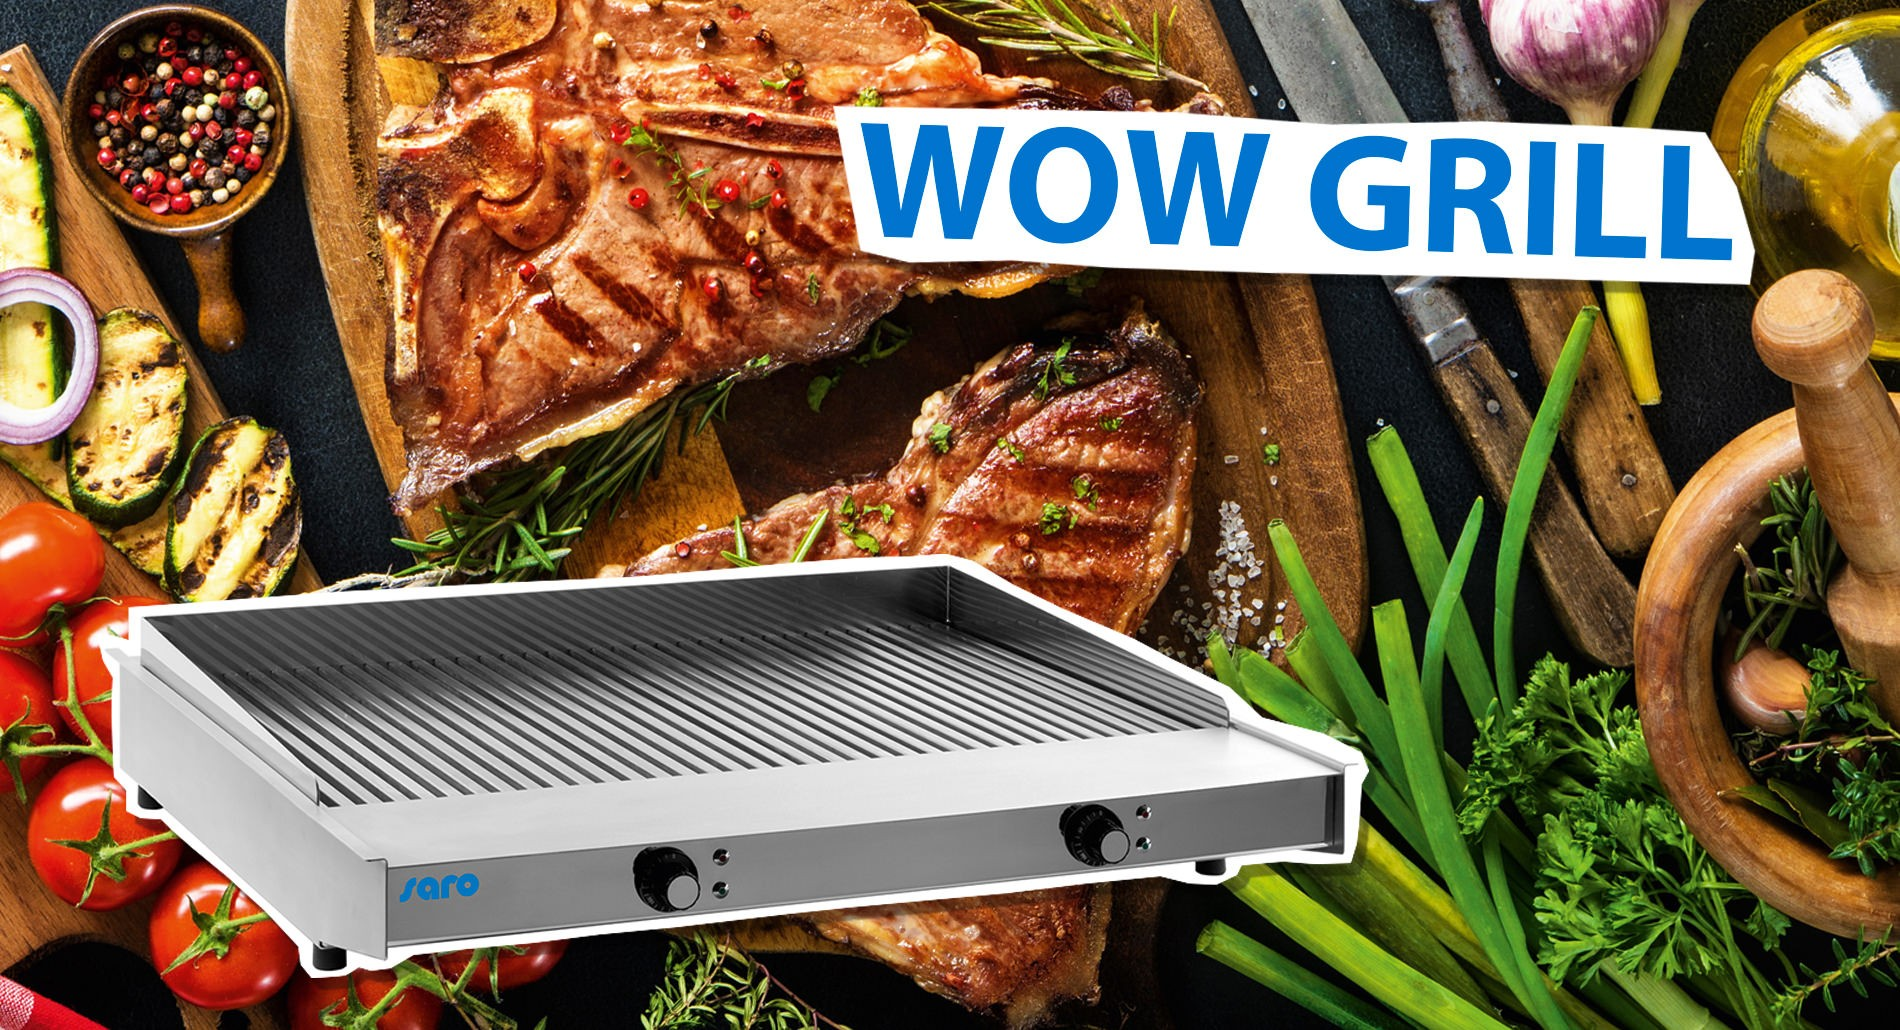 WOW GRILL - For a great grill experience